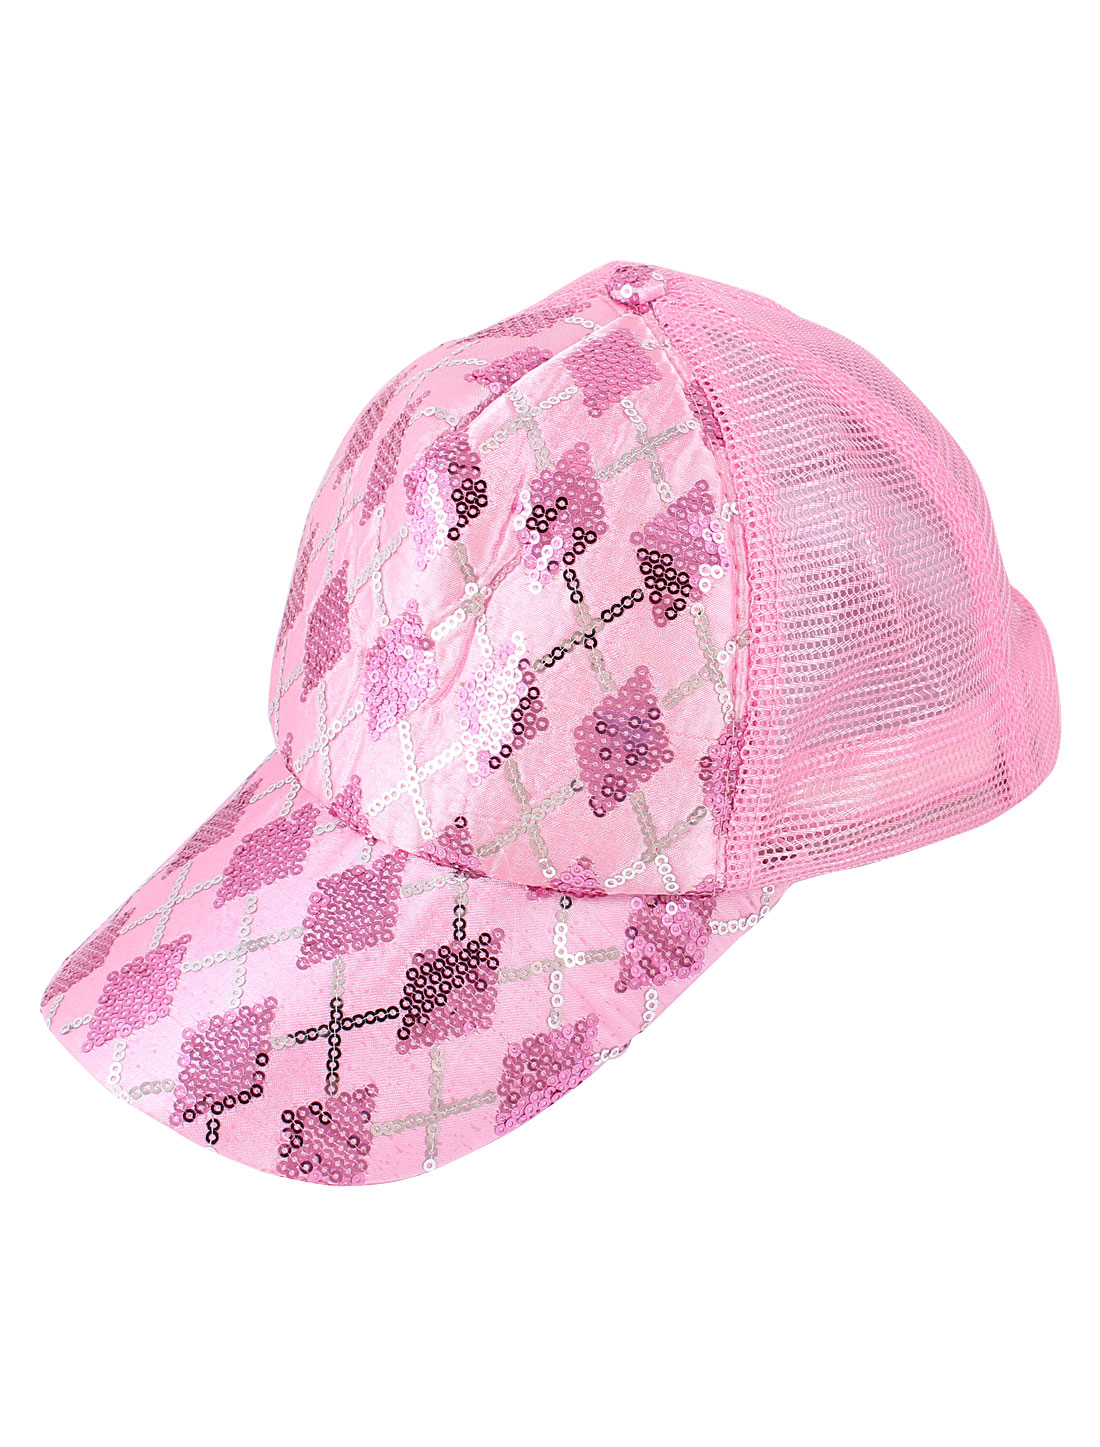 Paillette Accent Sun Visor Baseball Cap Hat Pink White for Woman